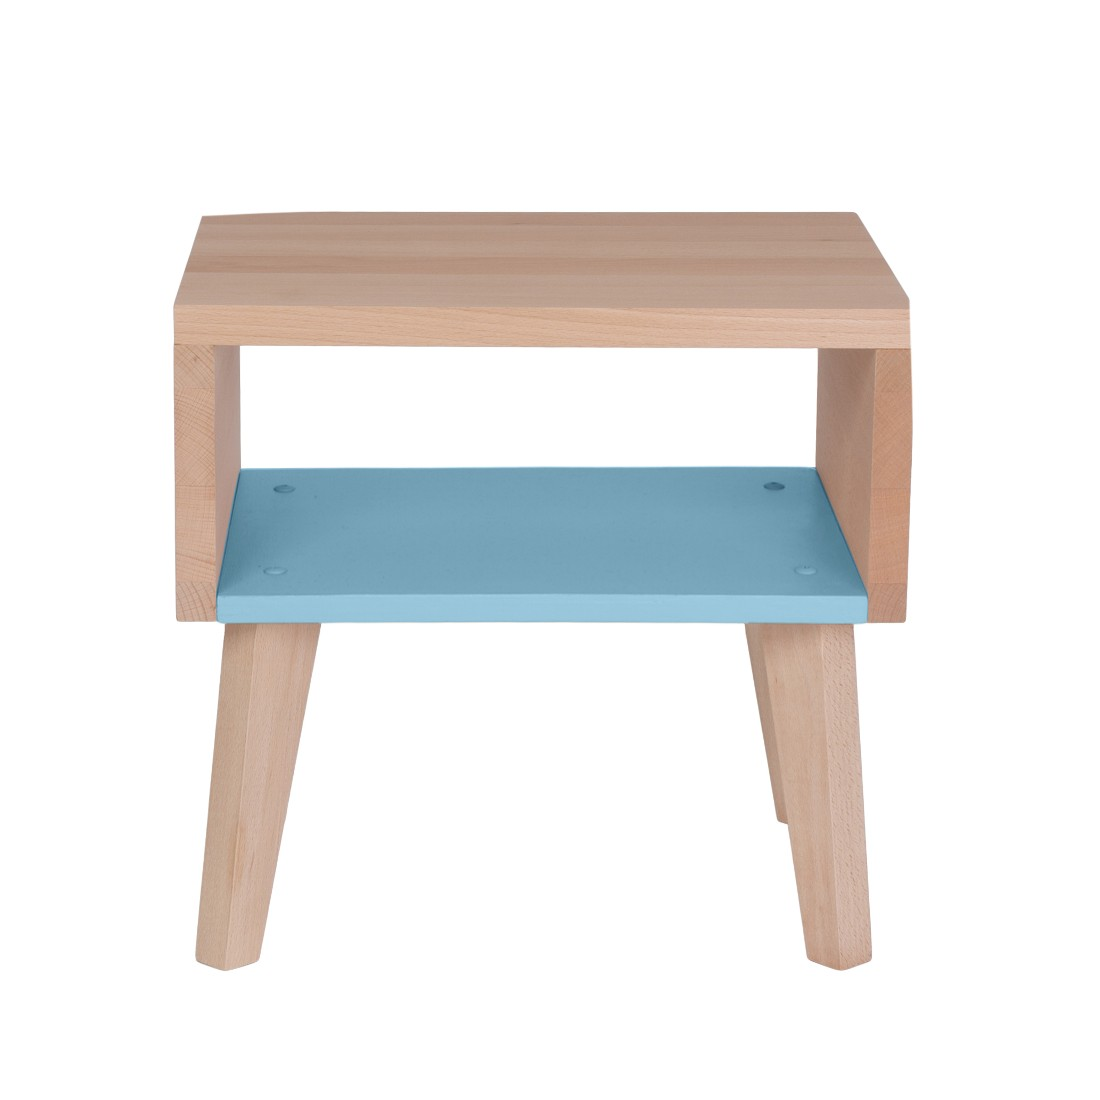 Table de chevet bleue